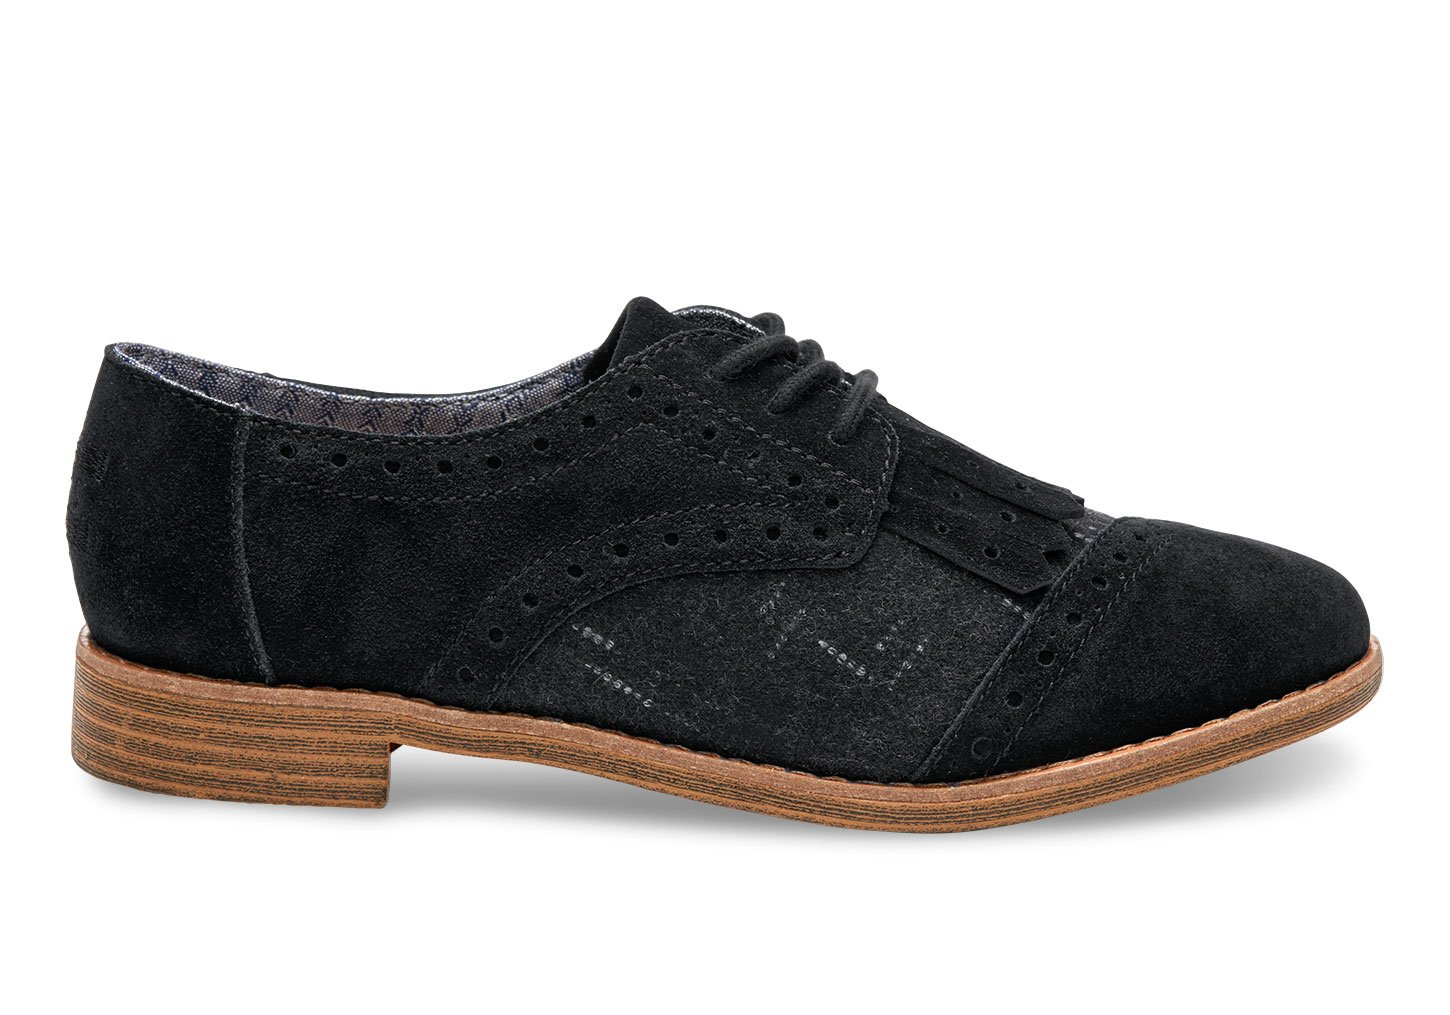 Find great deals on eBay for suede brogues. Shop with confidence.